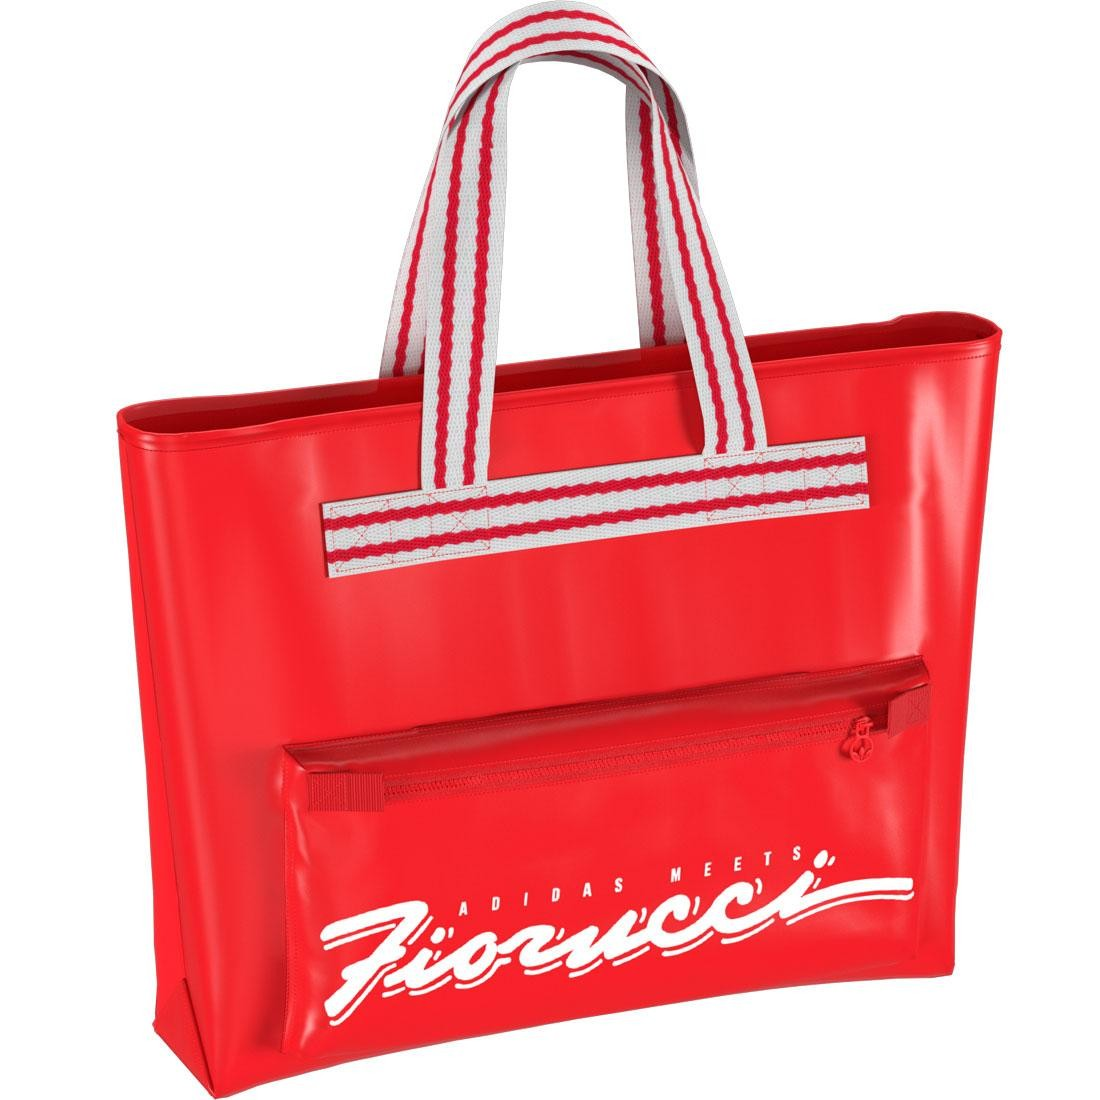 Adidas x Fiorucci Stripe Tote Bag (red)